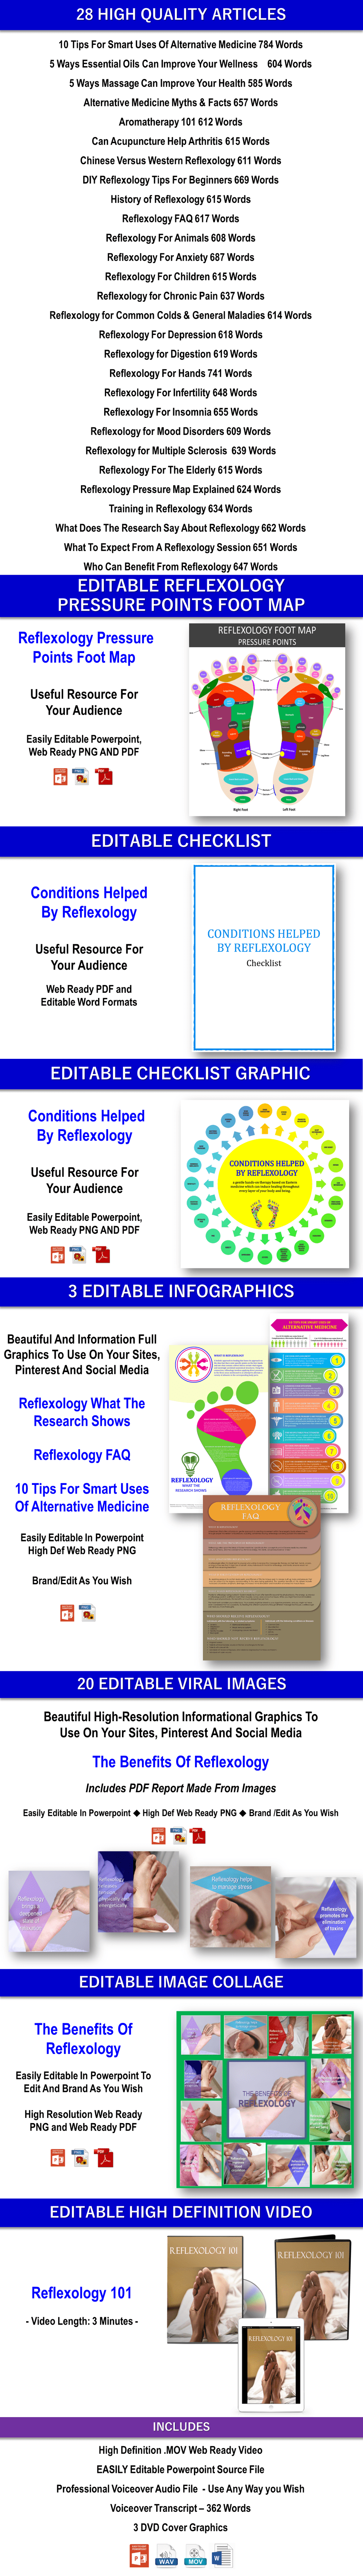 Reflexology Content - PLR Rights